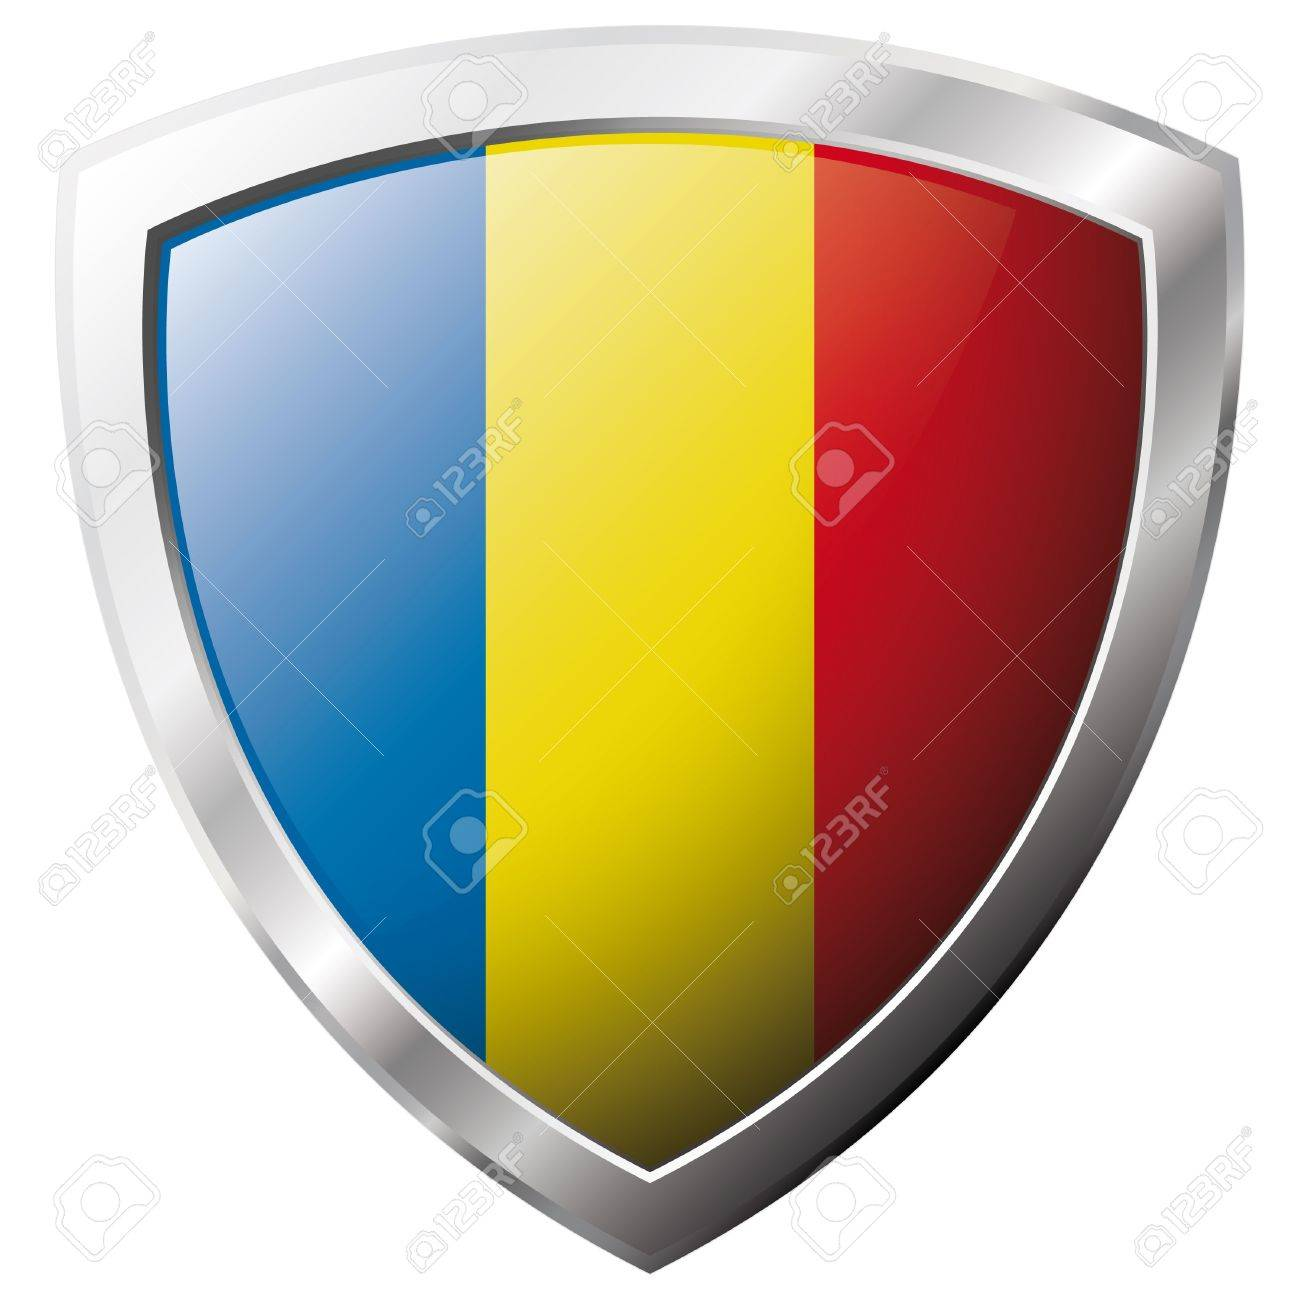 Romania flag on metal shiny shield vector illustration. Collection of flags on shield against white background. Abstract isolated object. Stock Vector - 6905927